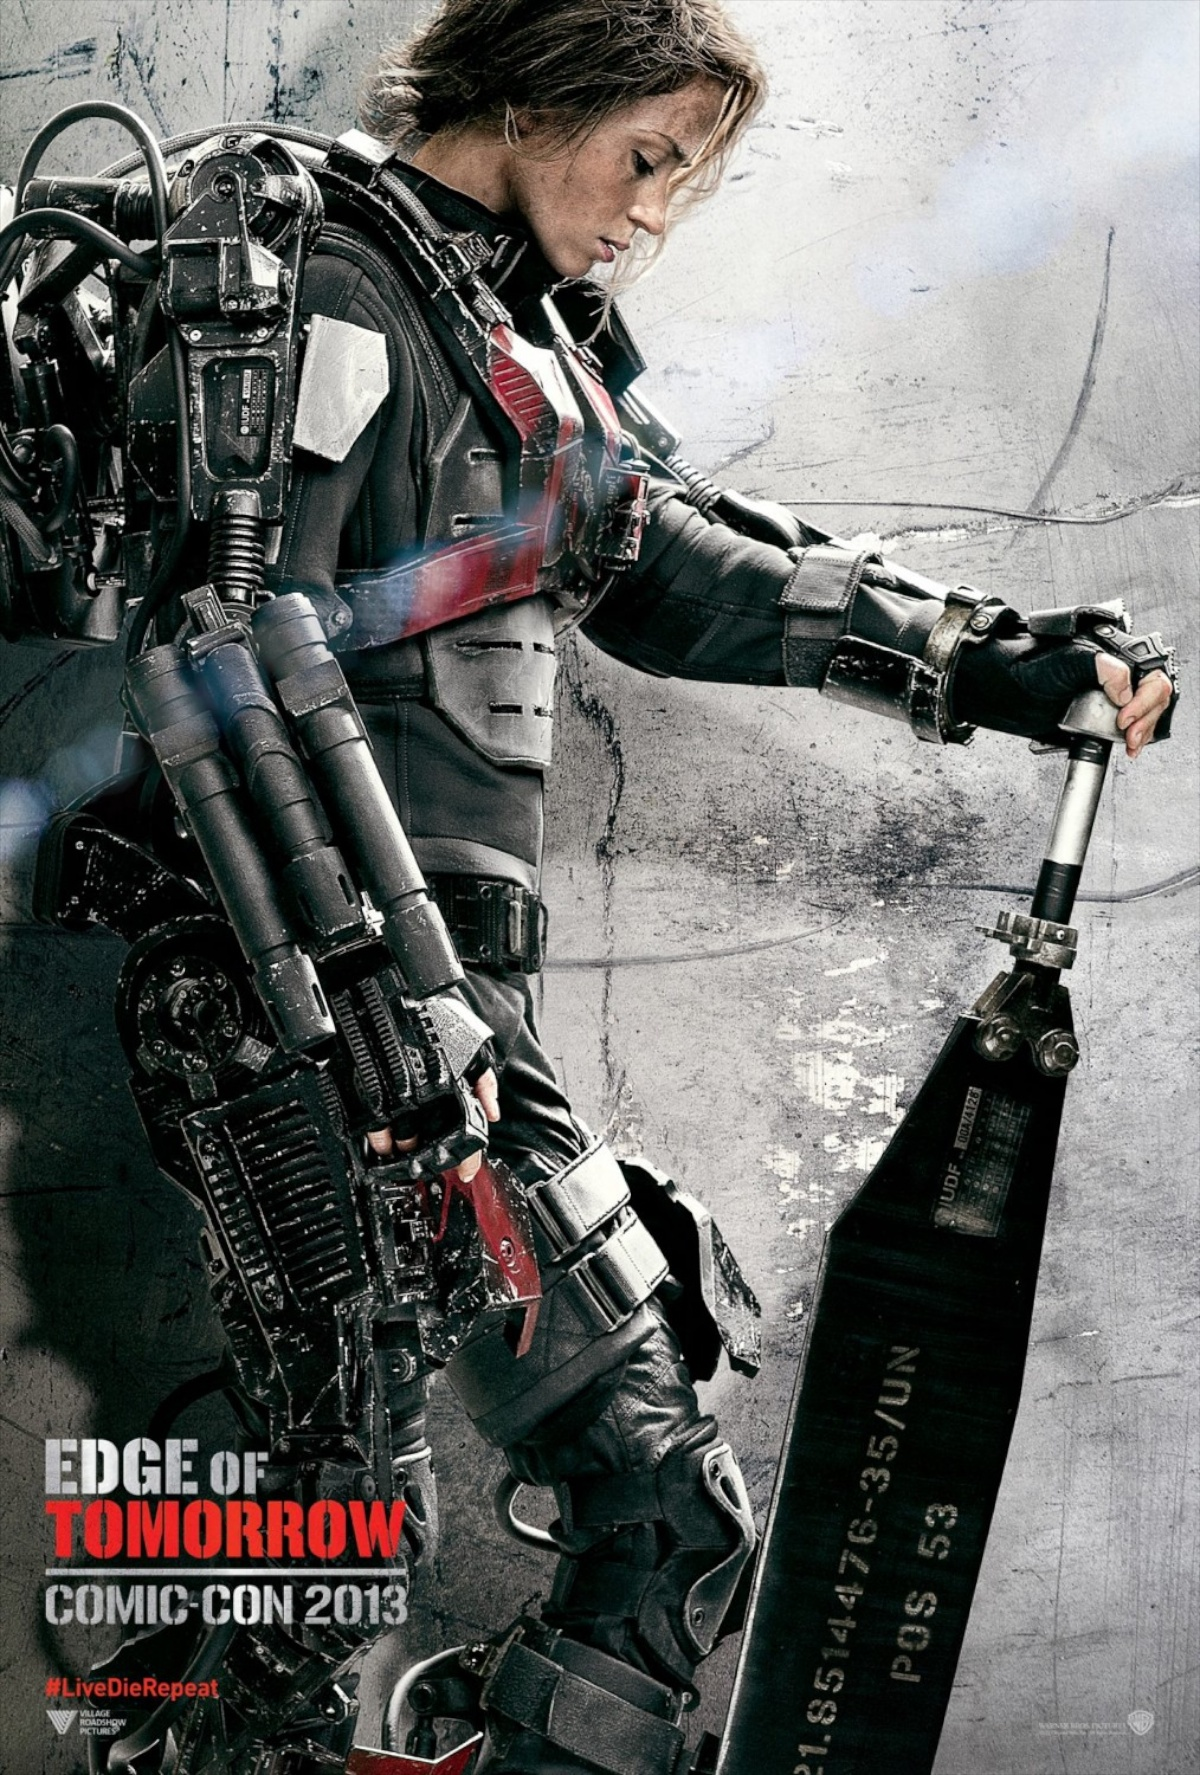 Edge of Tomorrow poster - Emily Blunt as Rita Vrataski